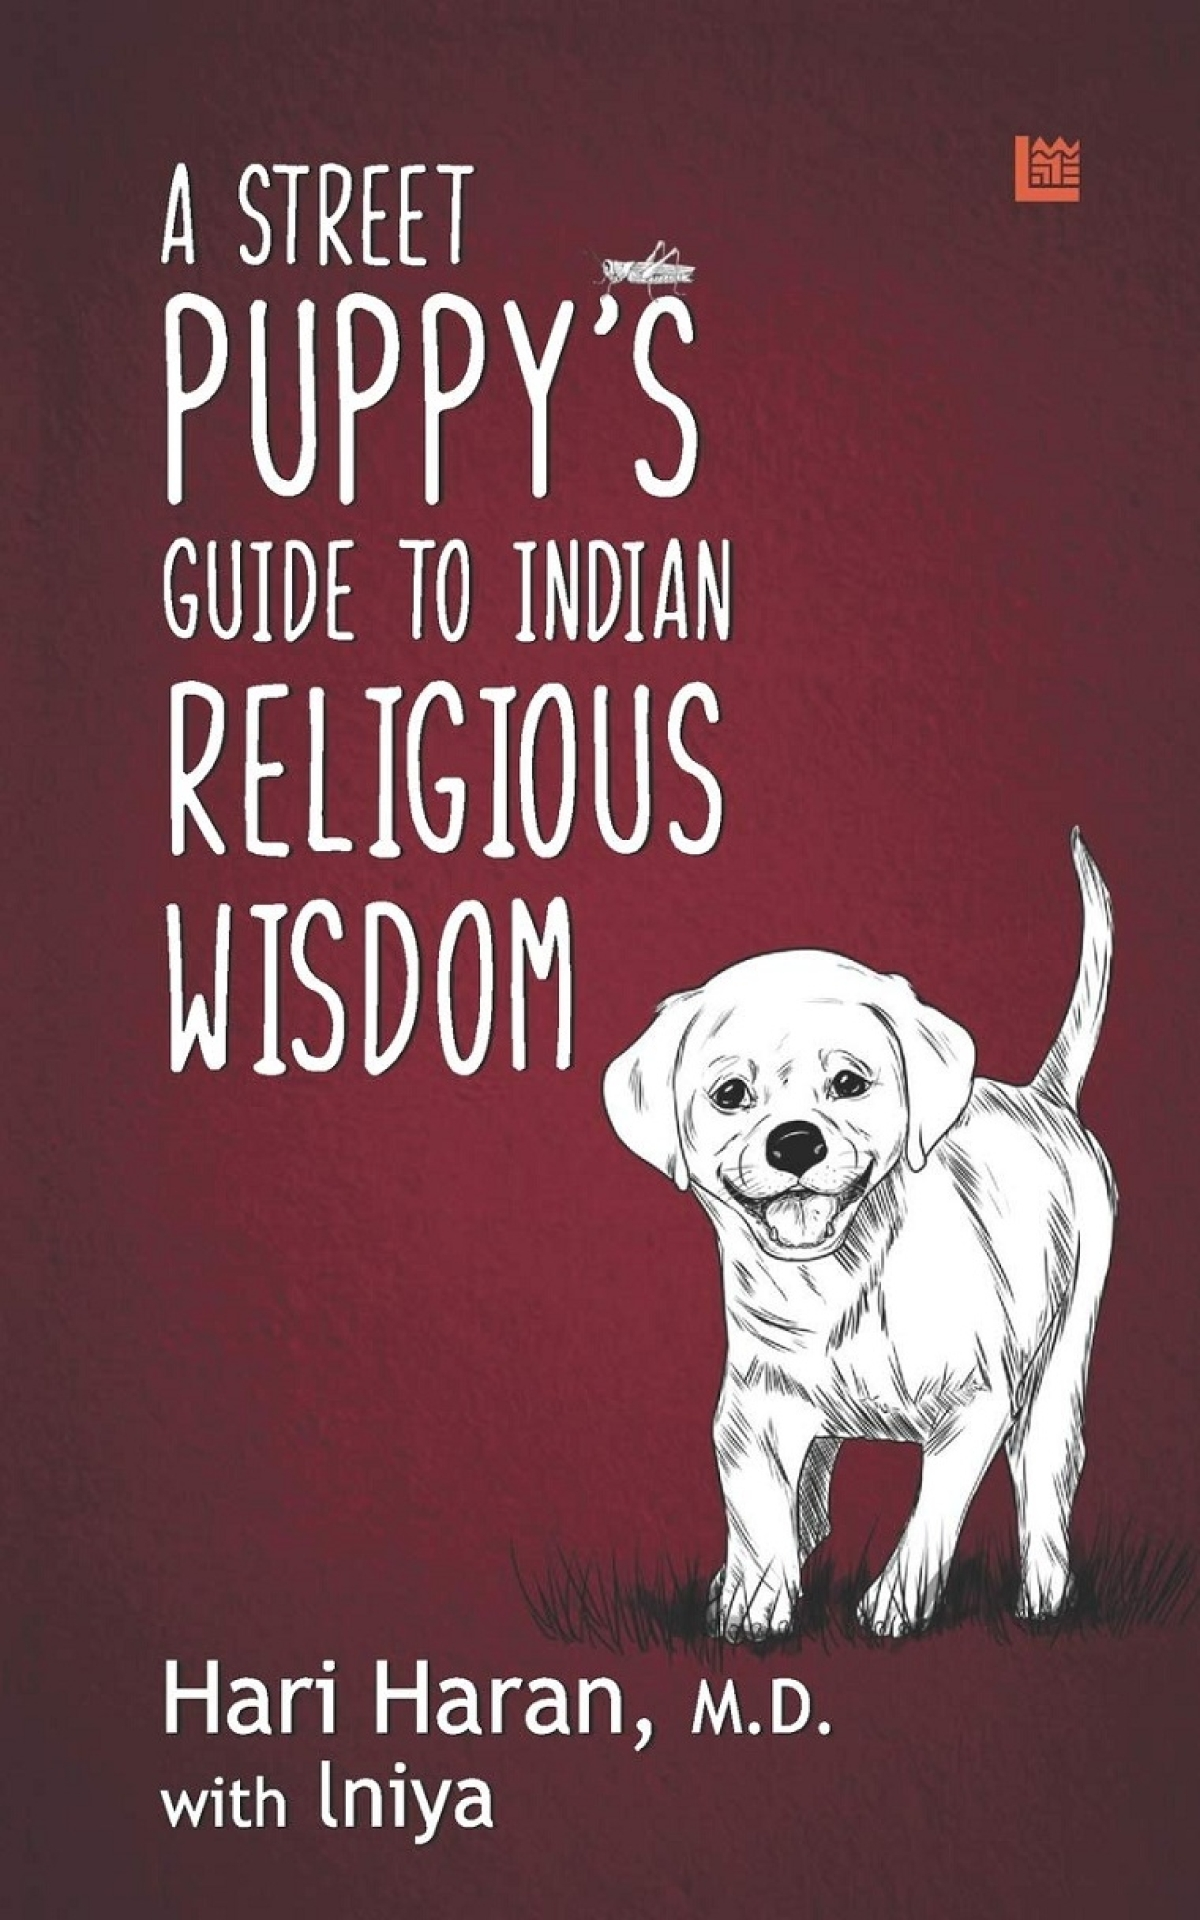 A Puppy's Guide To Indian Religious Wisdom review: A relook at Advaita Vedanta through a dog's eyes